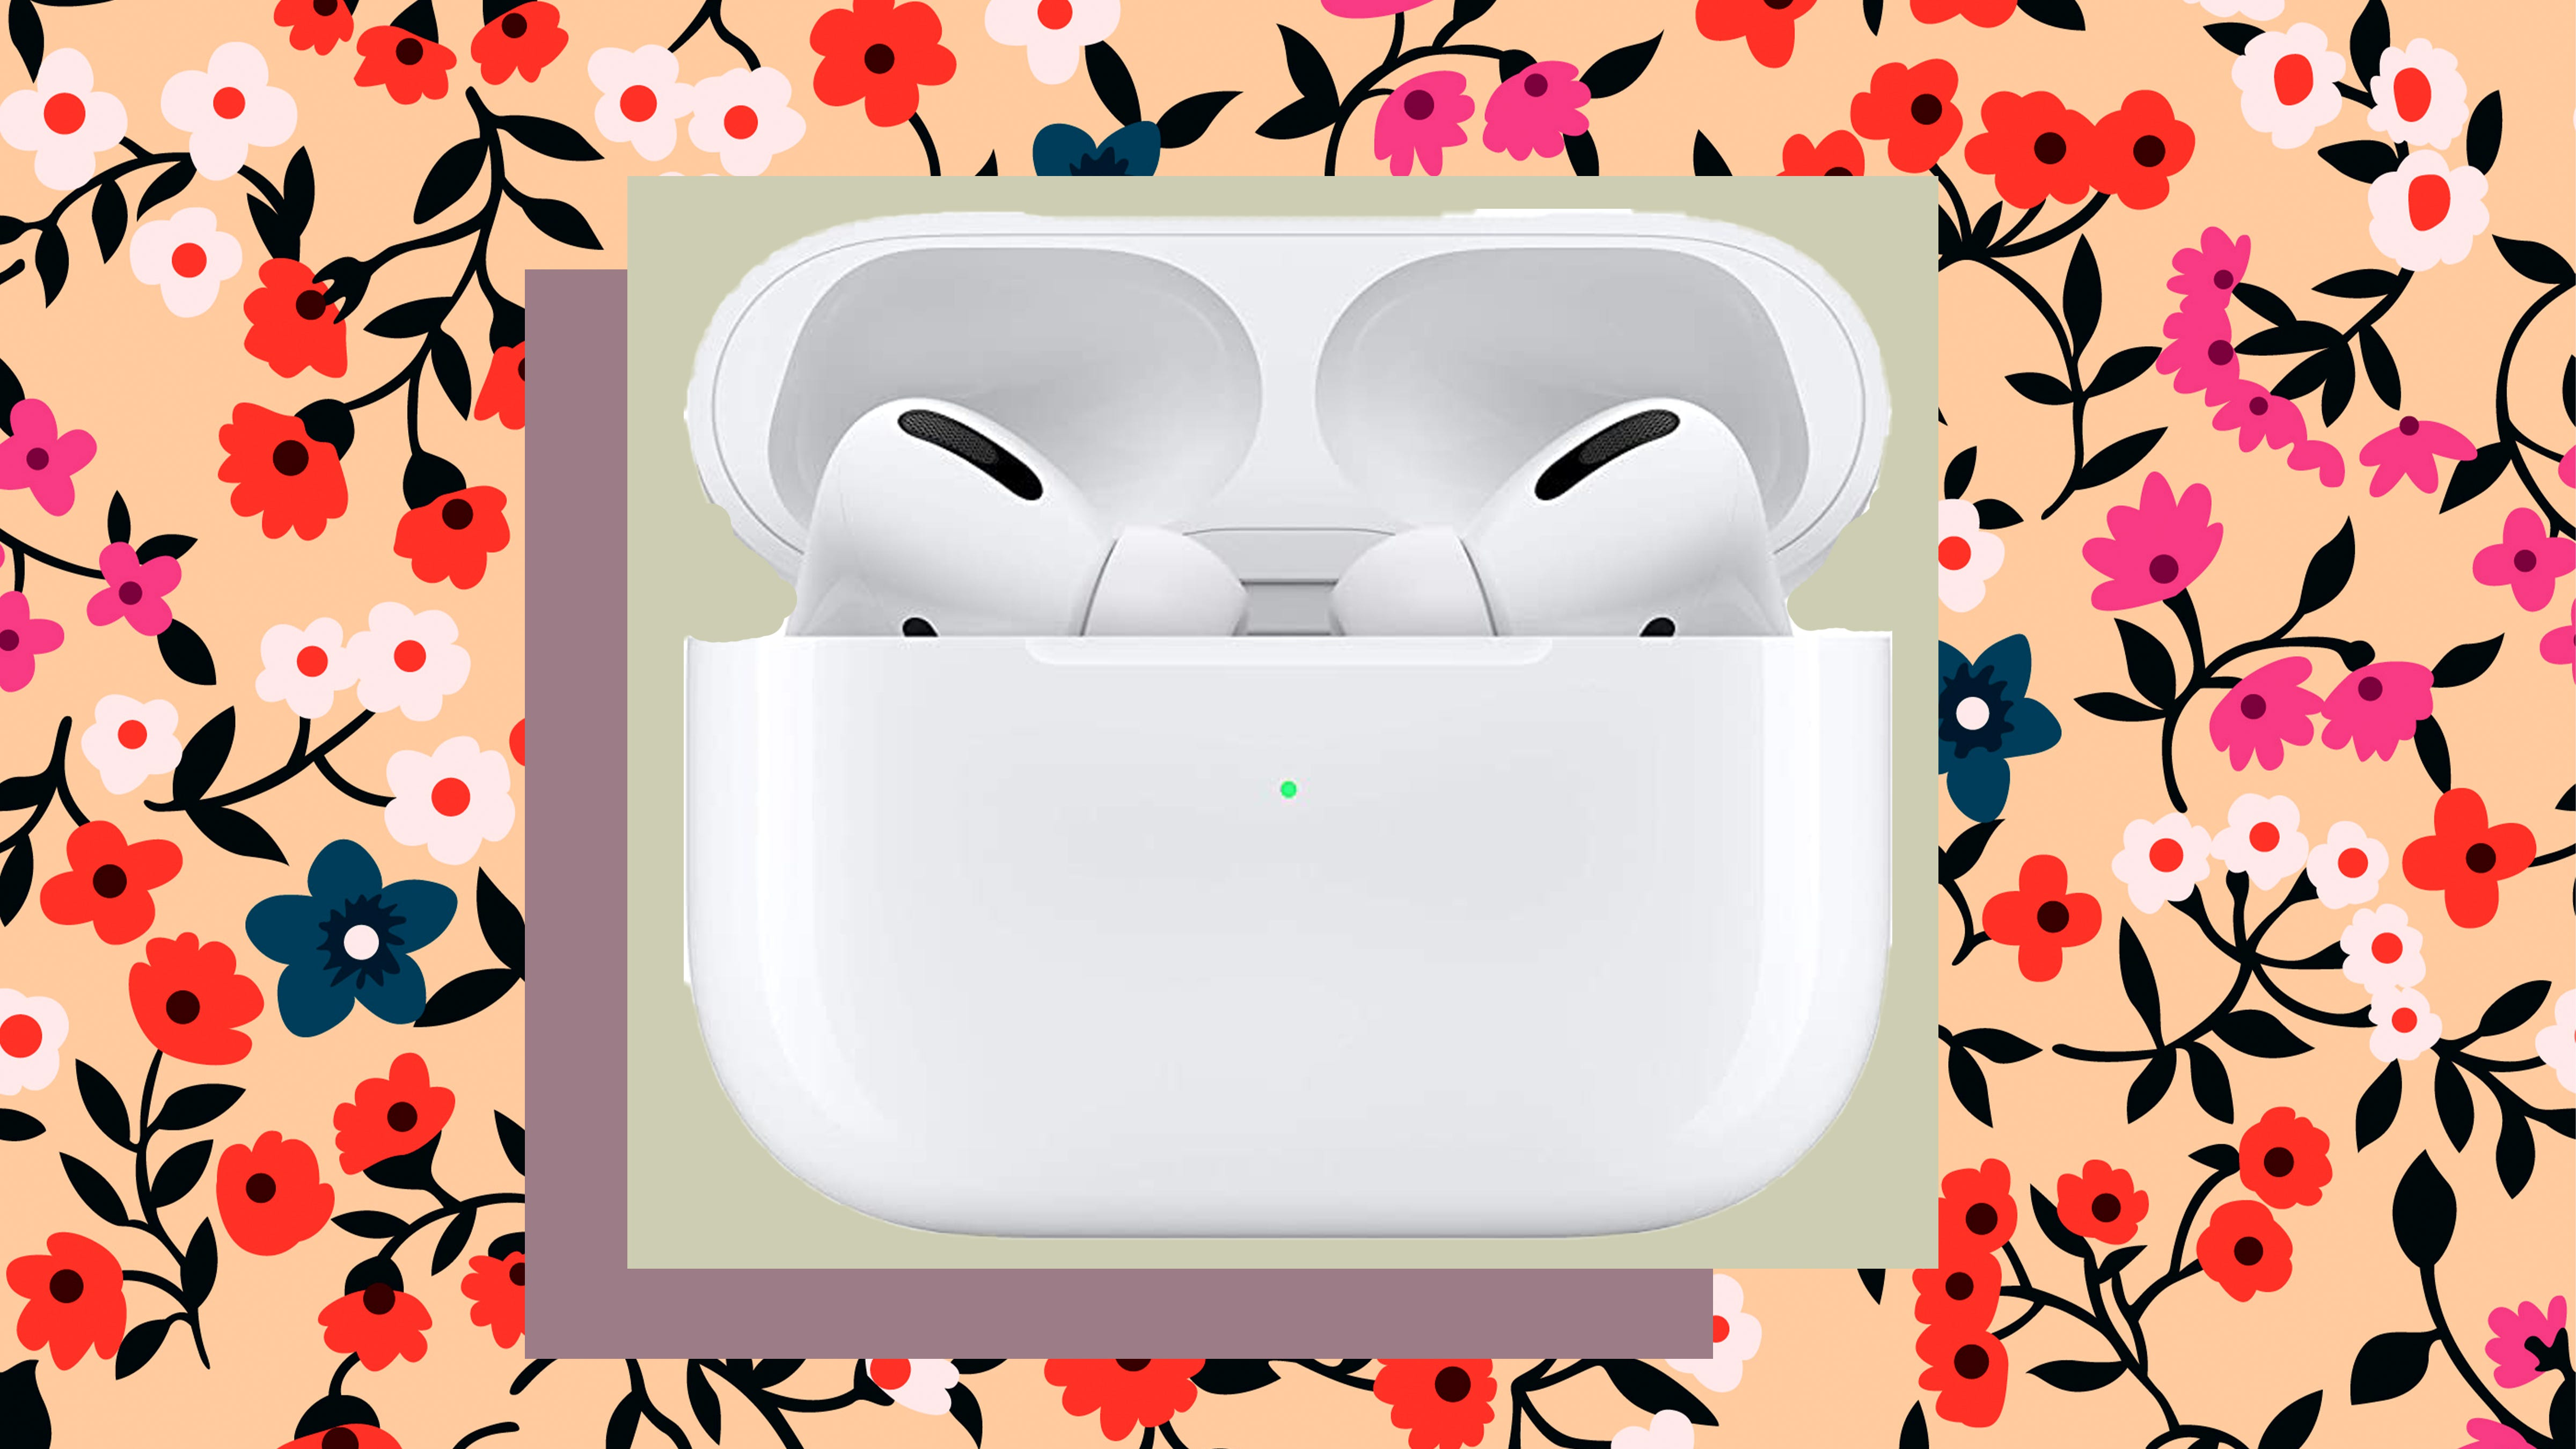 The Apple AirPods Pro are at one of their lowest prices ever right now